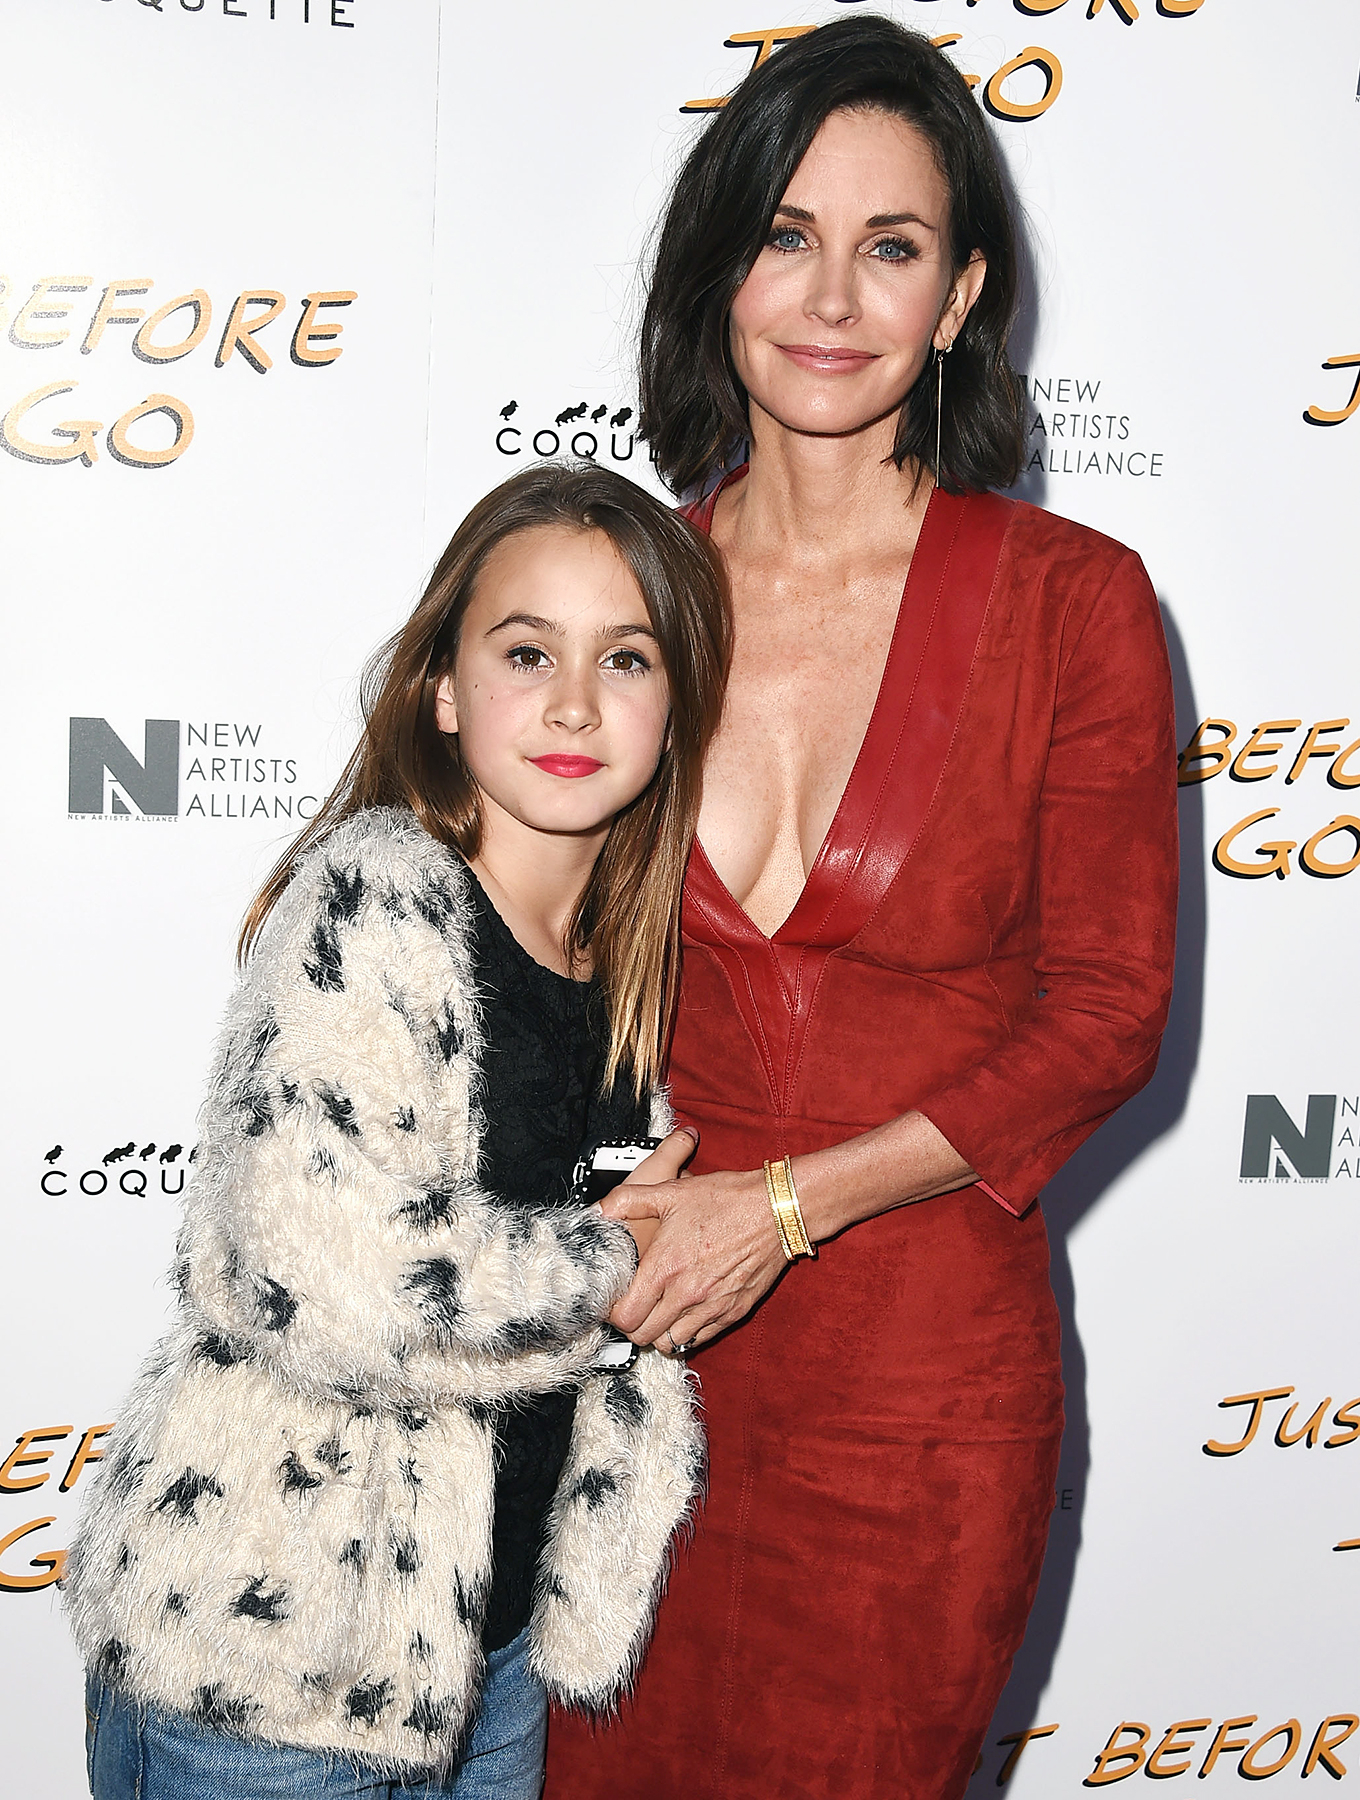 Coco Arquette Courteney Cox